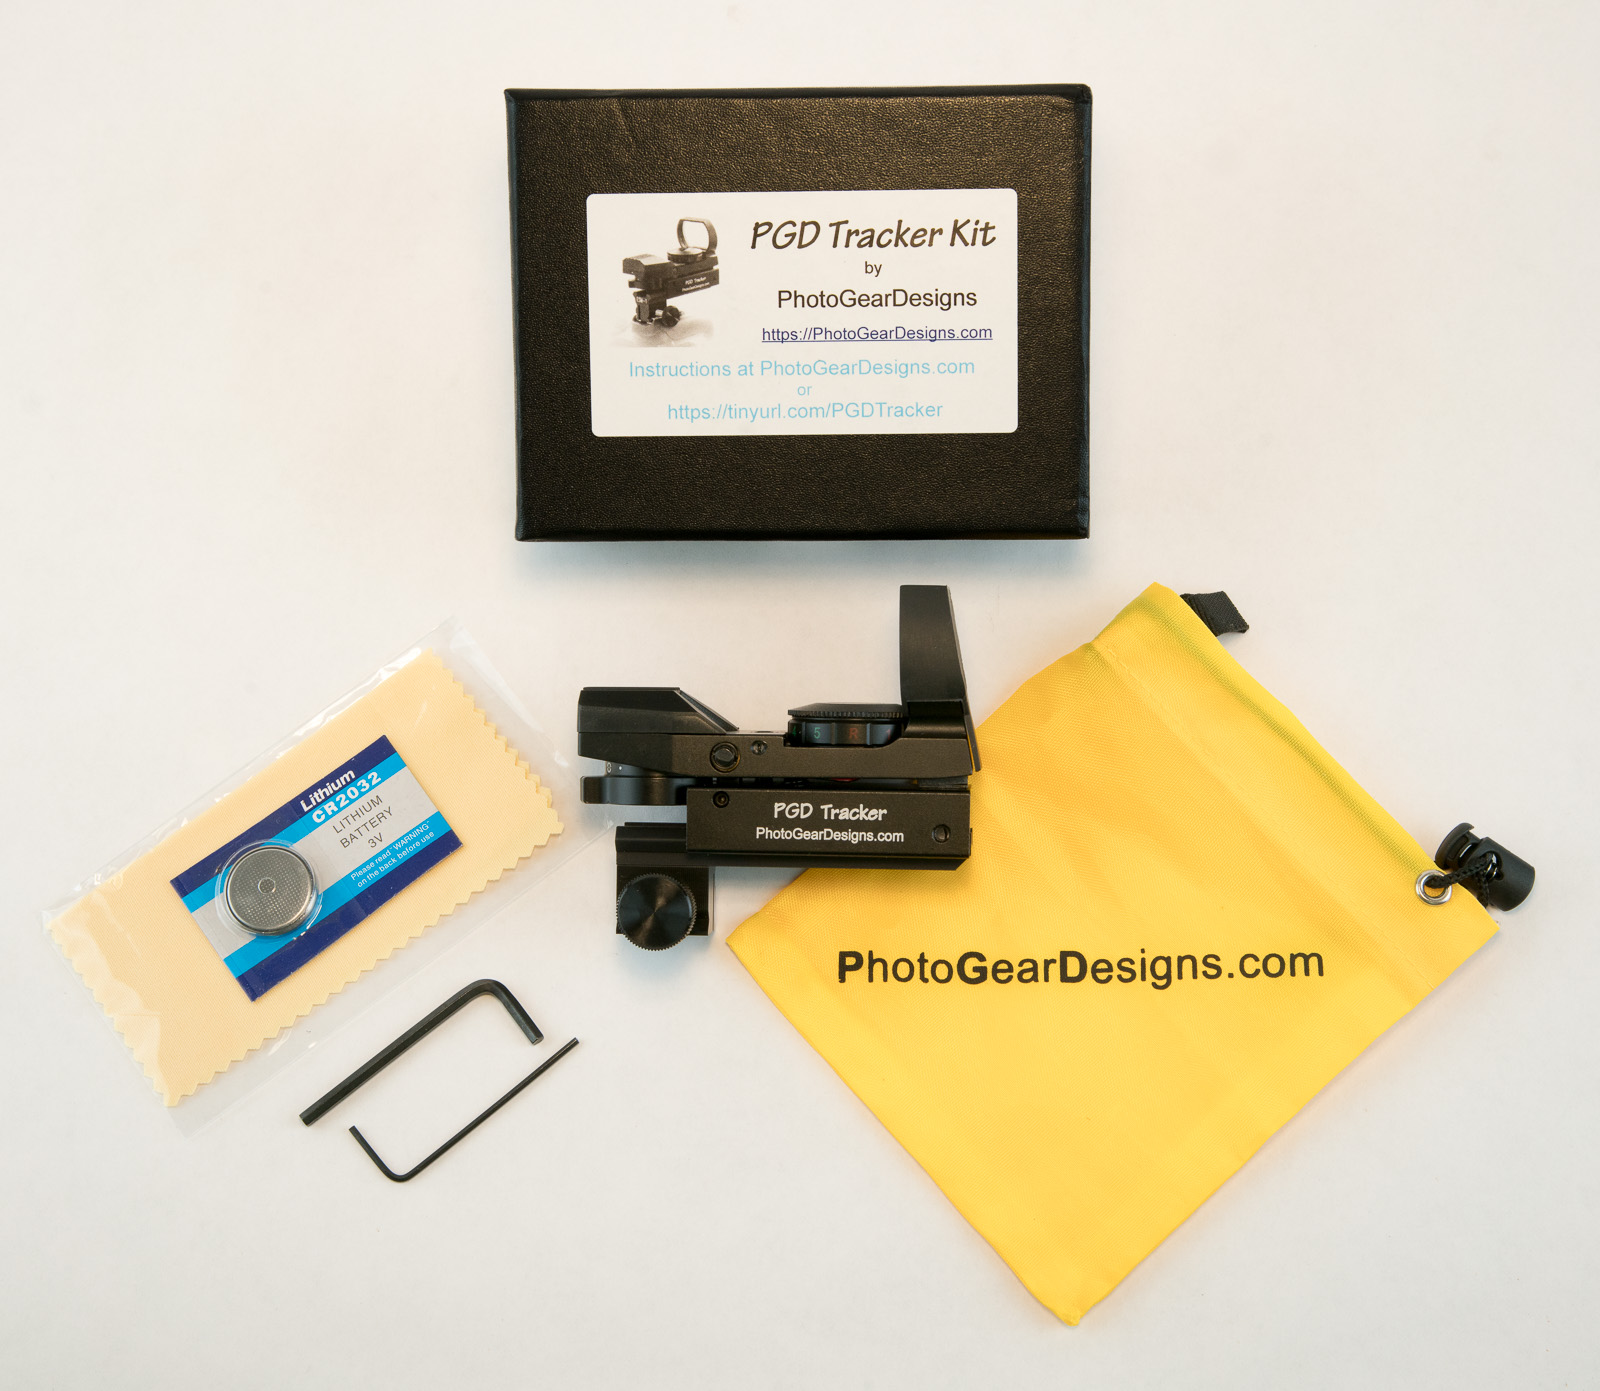 PGD Tracker Kit - Our combined expertise of design, development, and manufacturing - plus our passion for wildlife photography, led to forming Photo Gear Designs. We can now share our our unique solutions to photographic challenges with all of you and we are starting with the PGD Tracker Kit which includes the ESM-1 (external sight mount), and our own optical reflex sight, the PGD Tracker, specifically customized for photography.